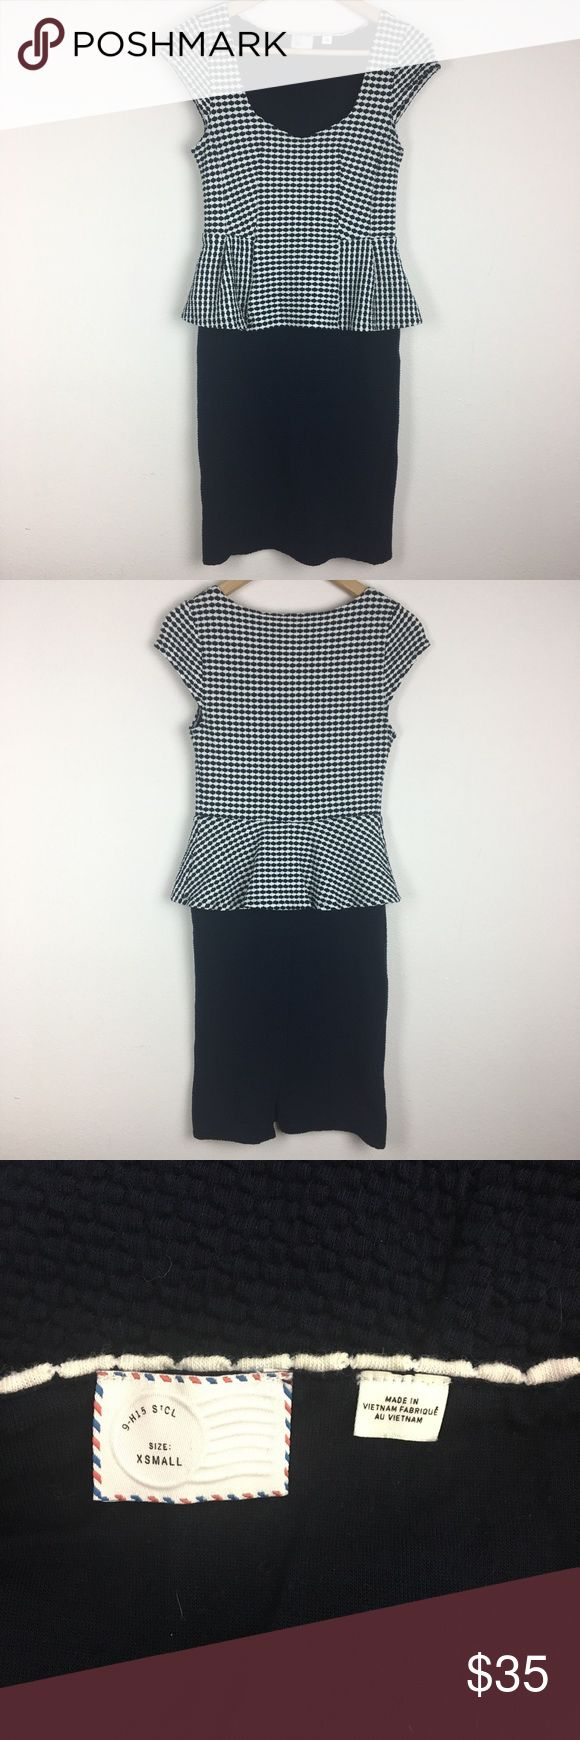 """Postage Stamp Anthropologie Women's Peplum Dress Brand: Postage Stamp. Material: Shell 56% Cotton 43% Polyester 1% Spandex, Lining 97% Rayon 3% Spandex. Color: Navy. Size: XSmall. Measurement (approx): Length 35 1/2"""" Armpit to armpit 14 1/2"""" Waist 13"""" flat lay. Light piling on lining (cannot be seen while wearing dress). Made in Vietnam.  Make an offer. Anthropologie Dresses"""